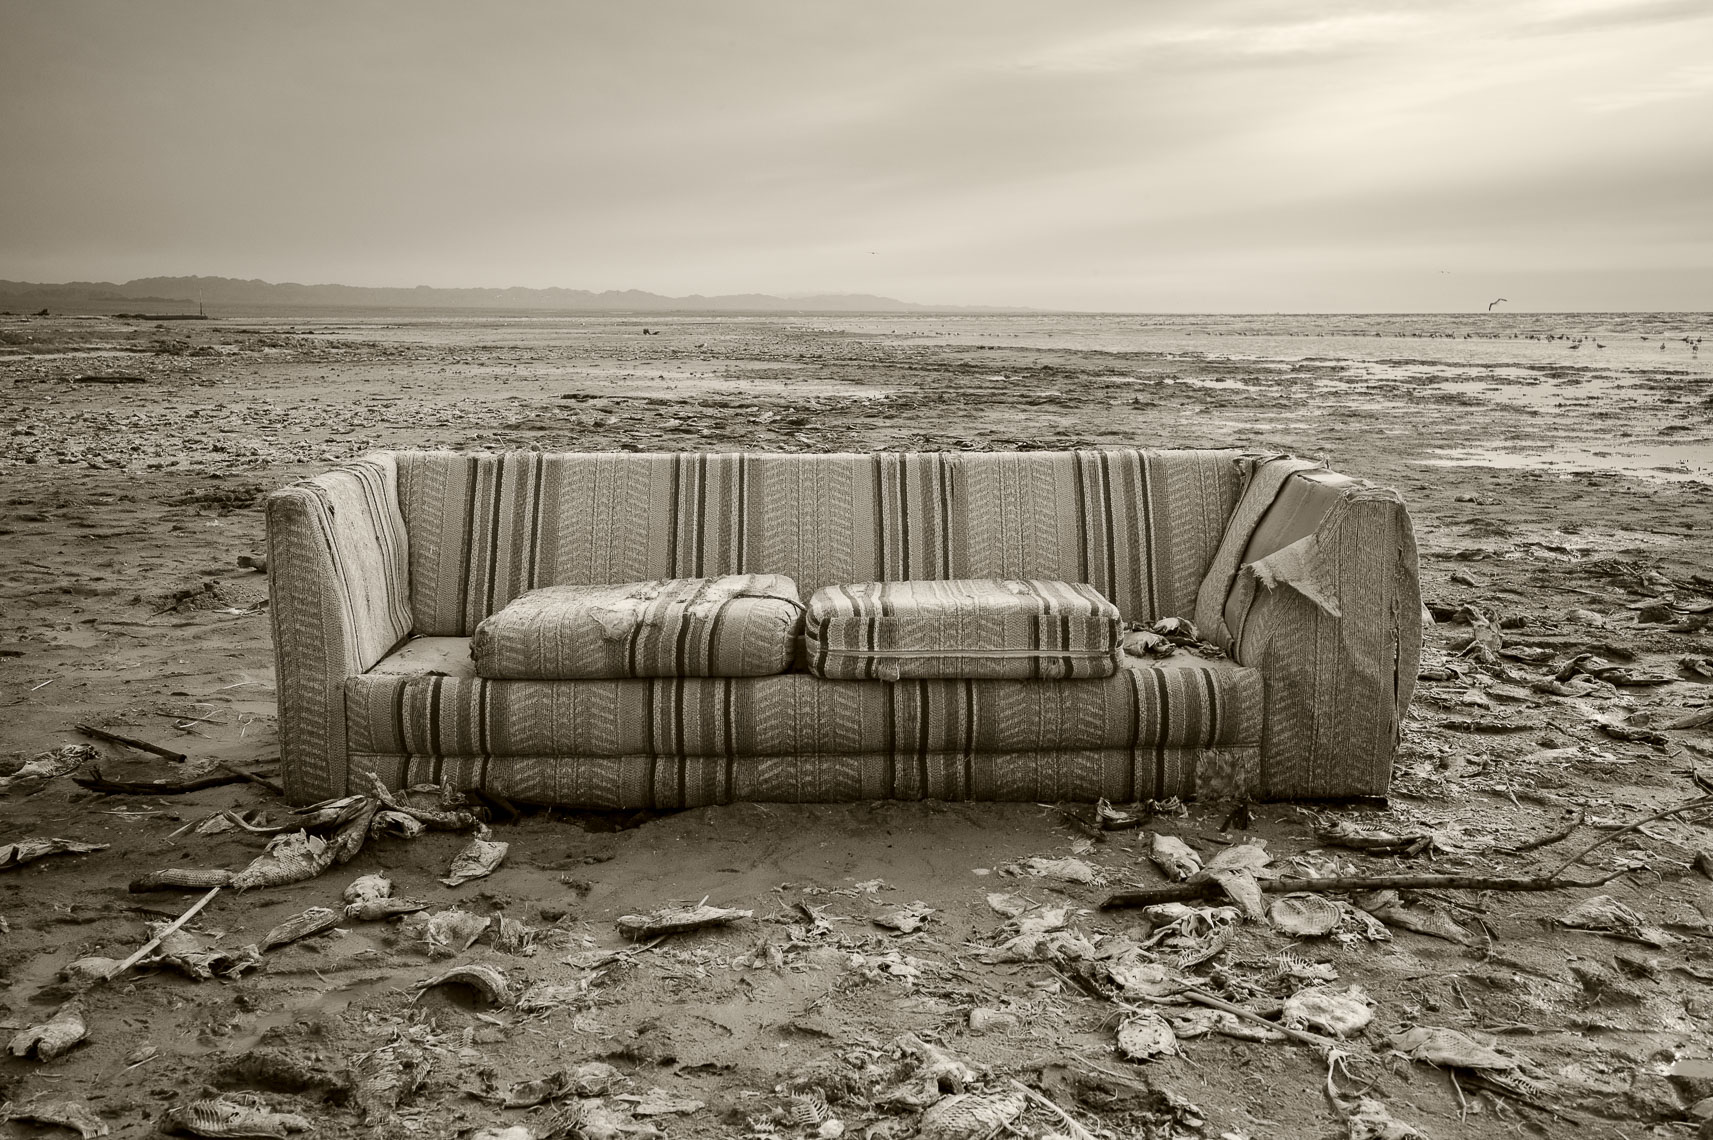 Couch and Fish, Salton Sea